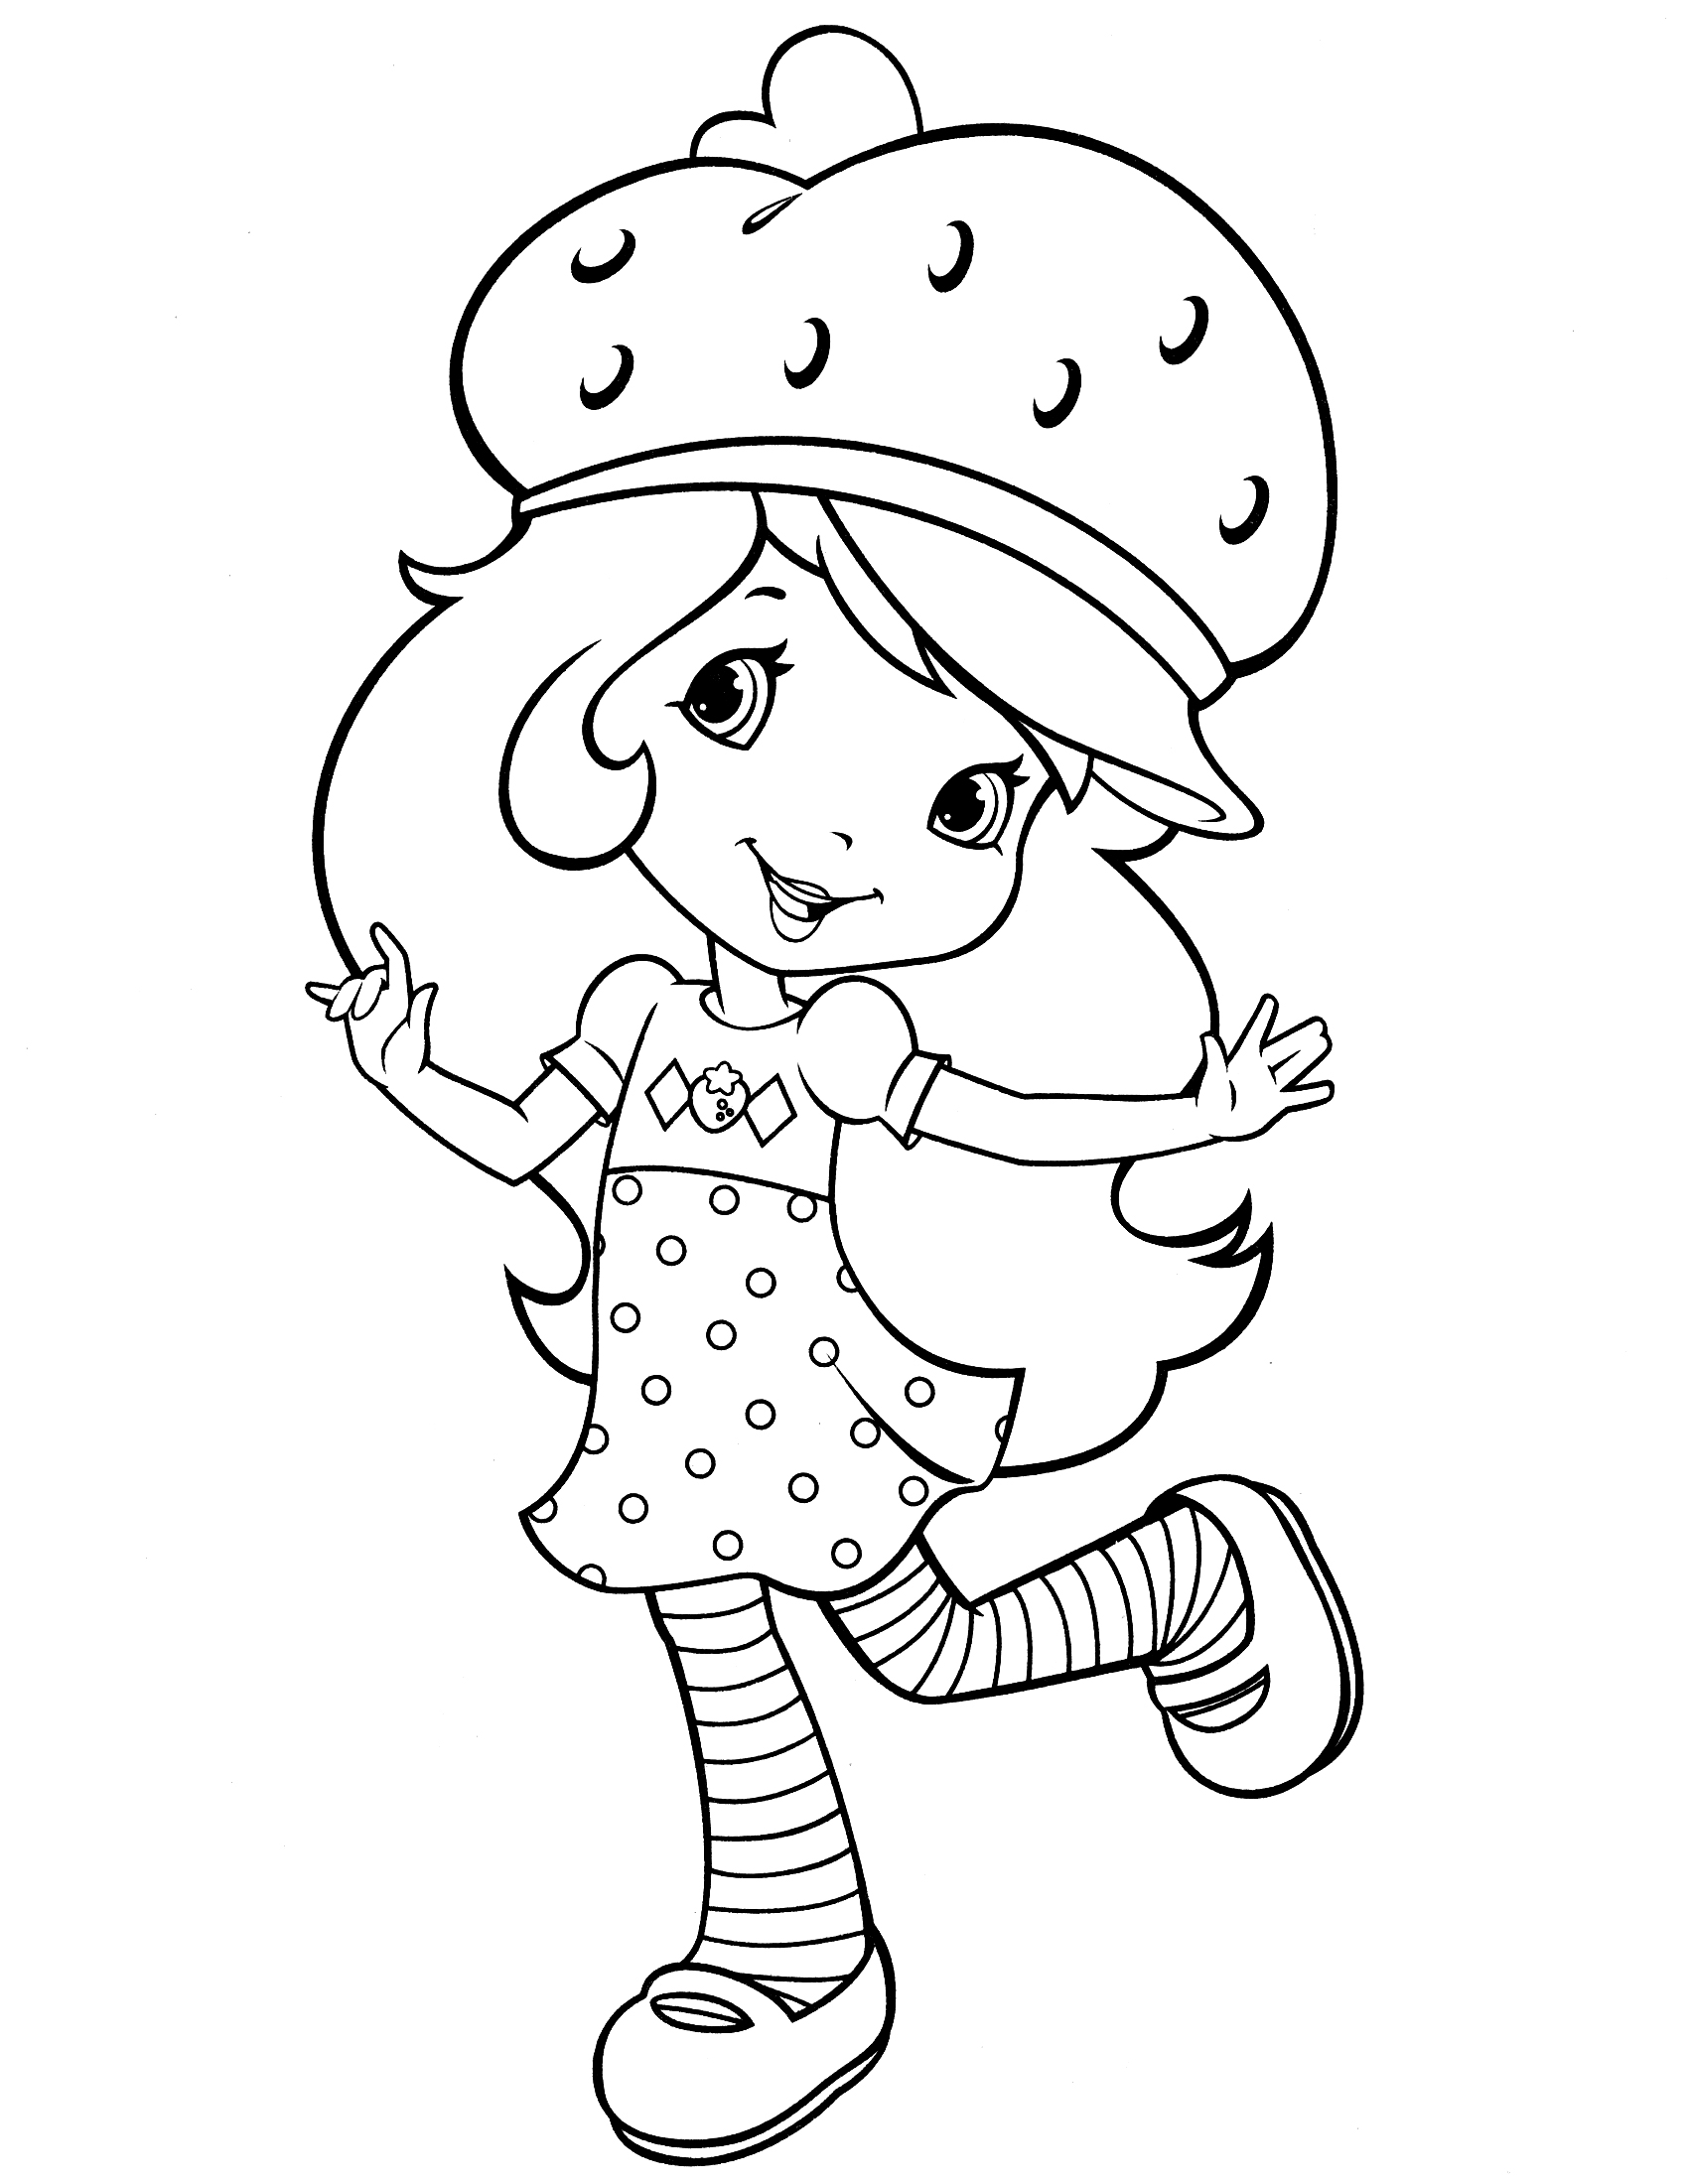 new strawberry shortcake coloring pages printable free printable strawberry shortcake coloring pages for kids pages new strawberry printable coloring shortcake